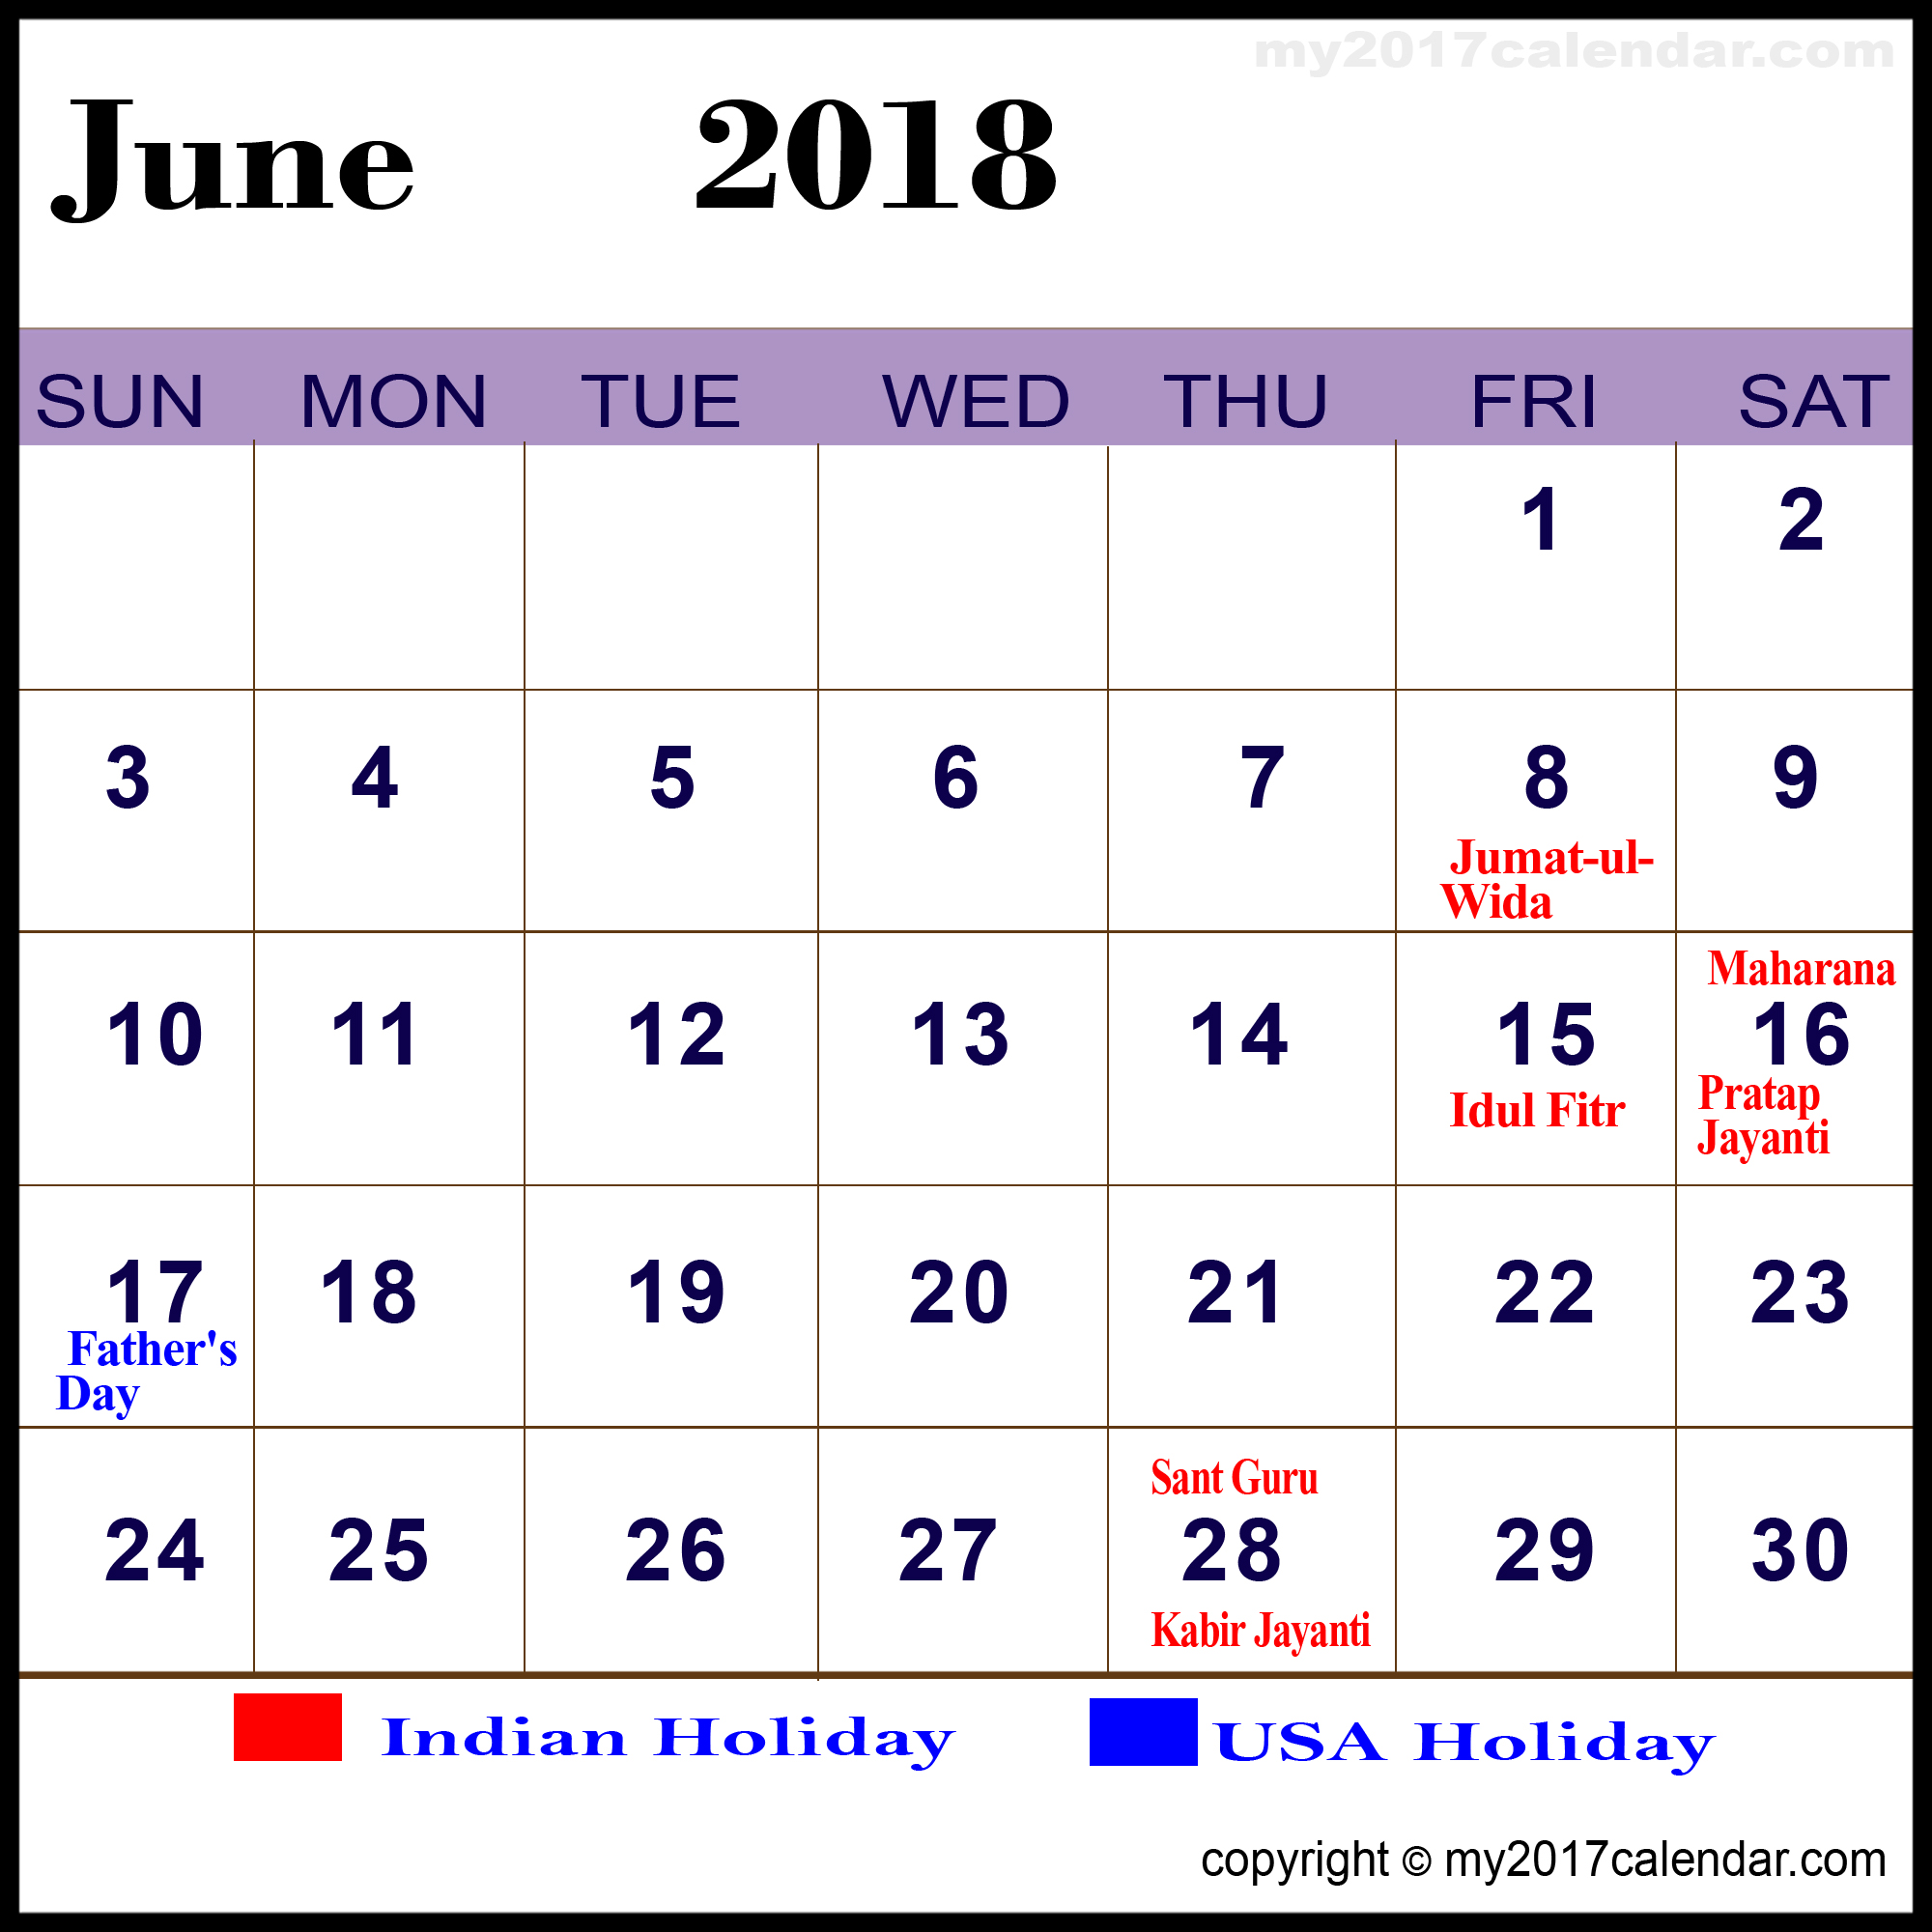 june 2018 calendar india holidays